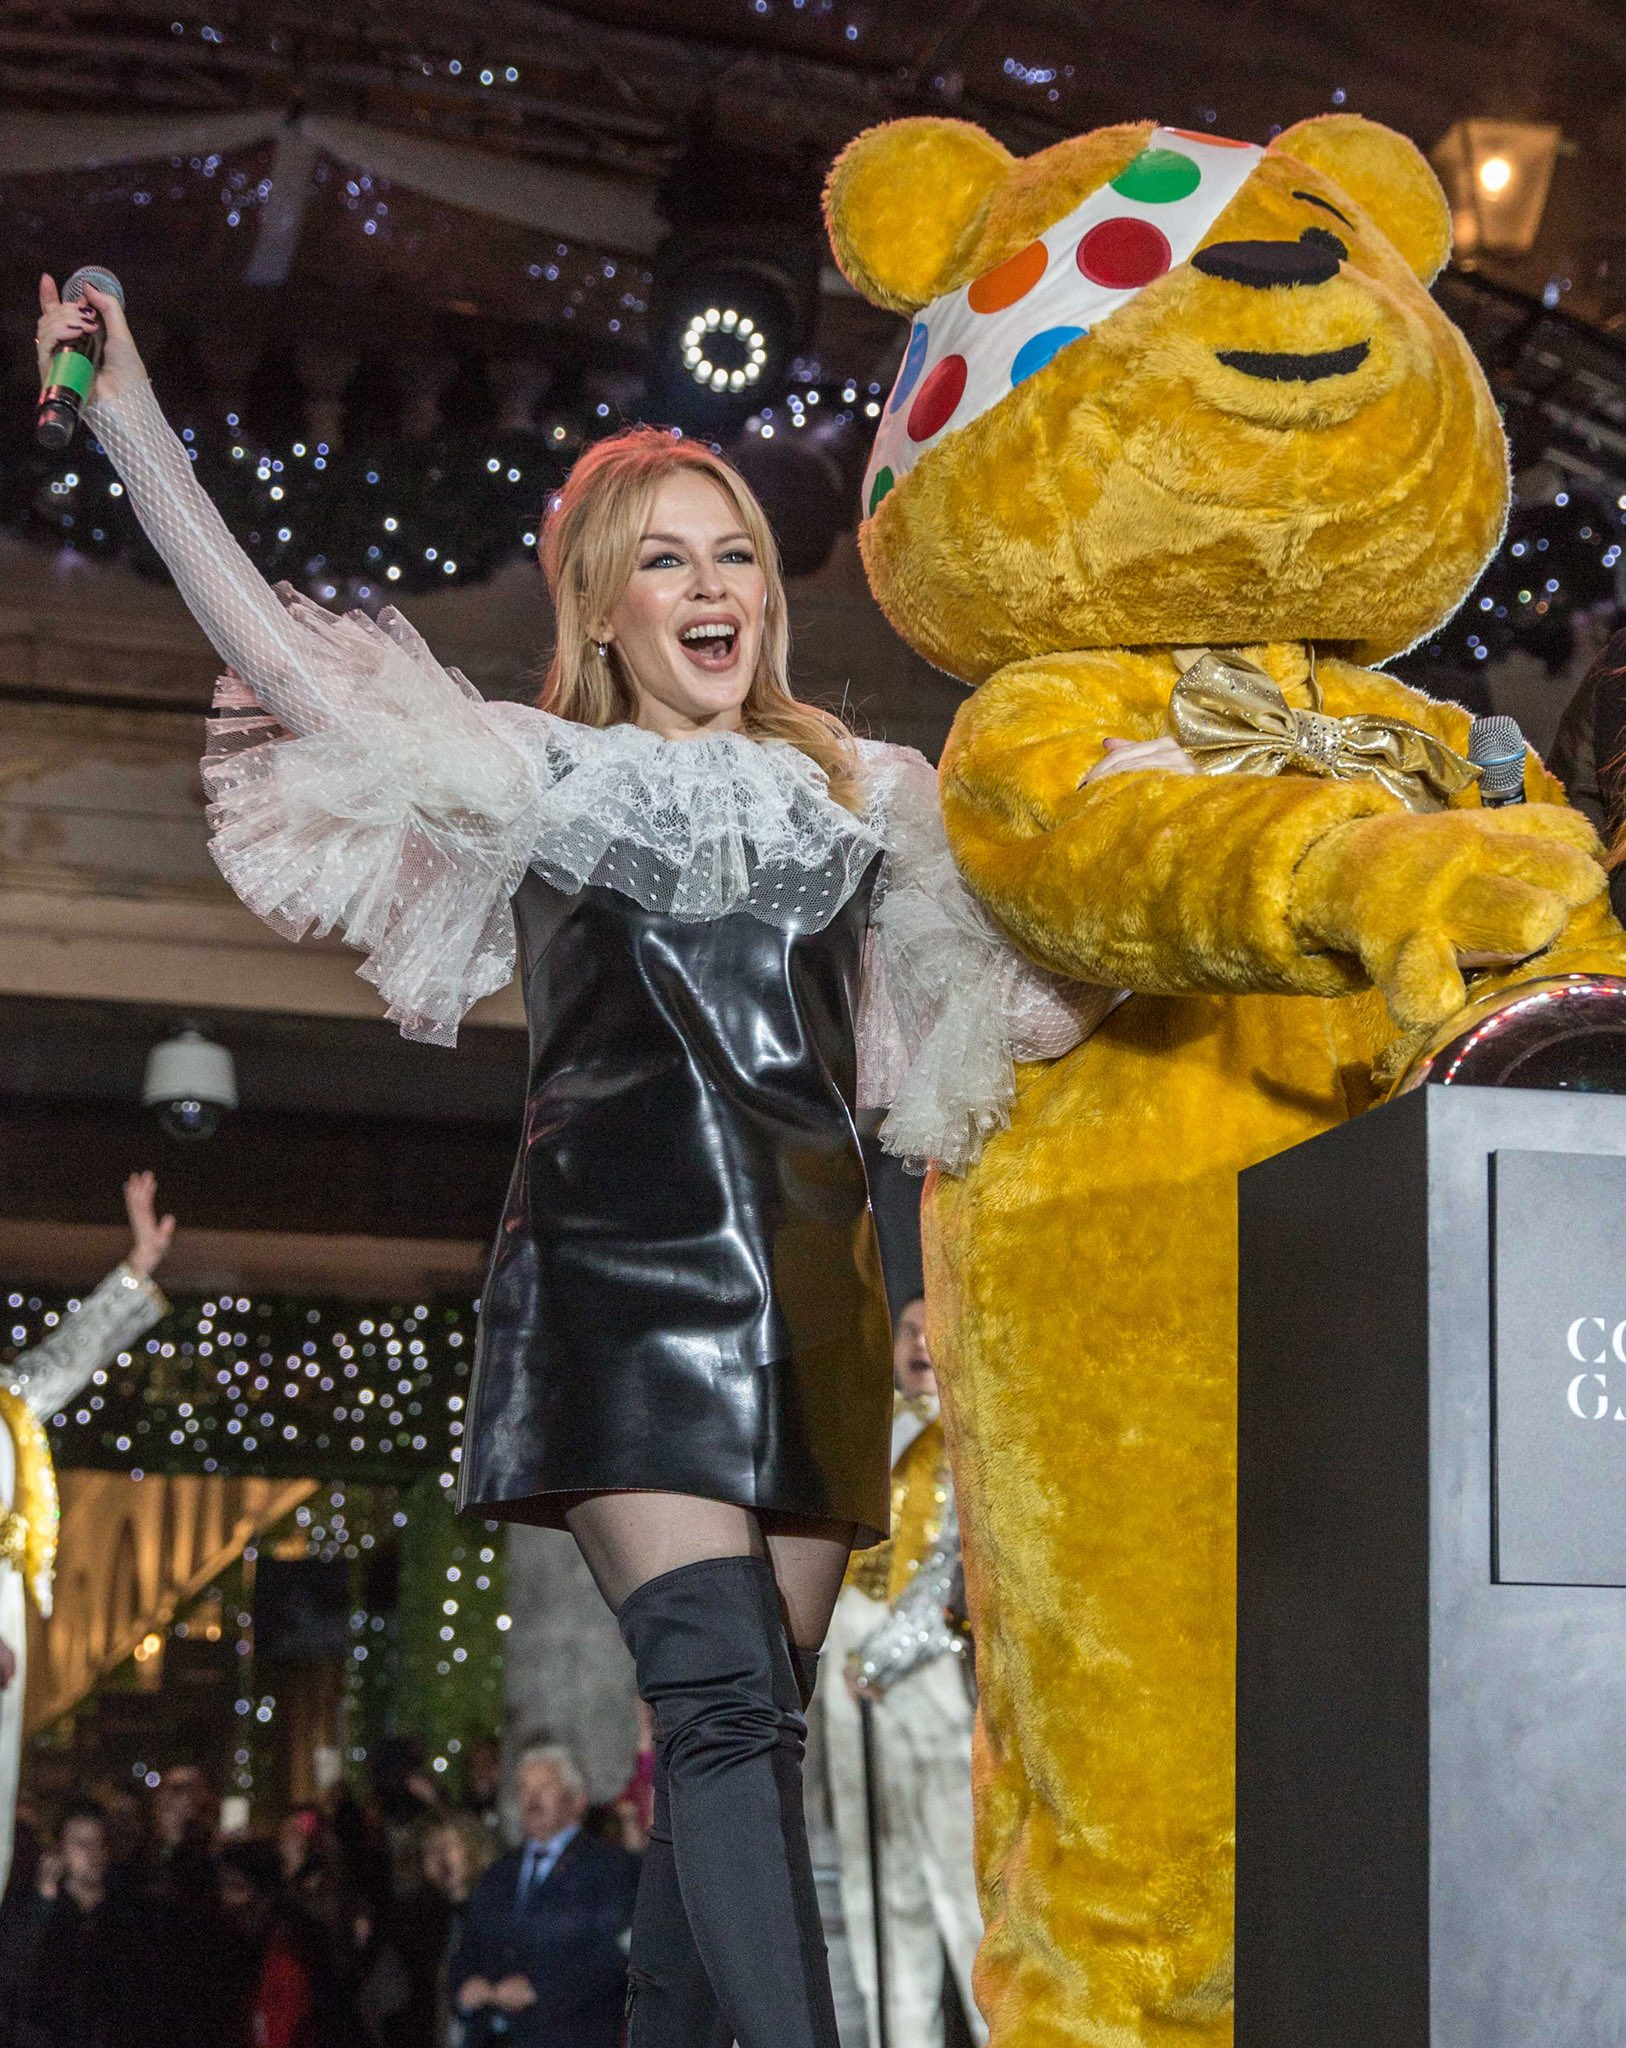 Love you #Pudsey. All the best to @bbccin tonight💛💛💛 #childreninneed https://t.co/WkfdpPhS9K